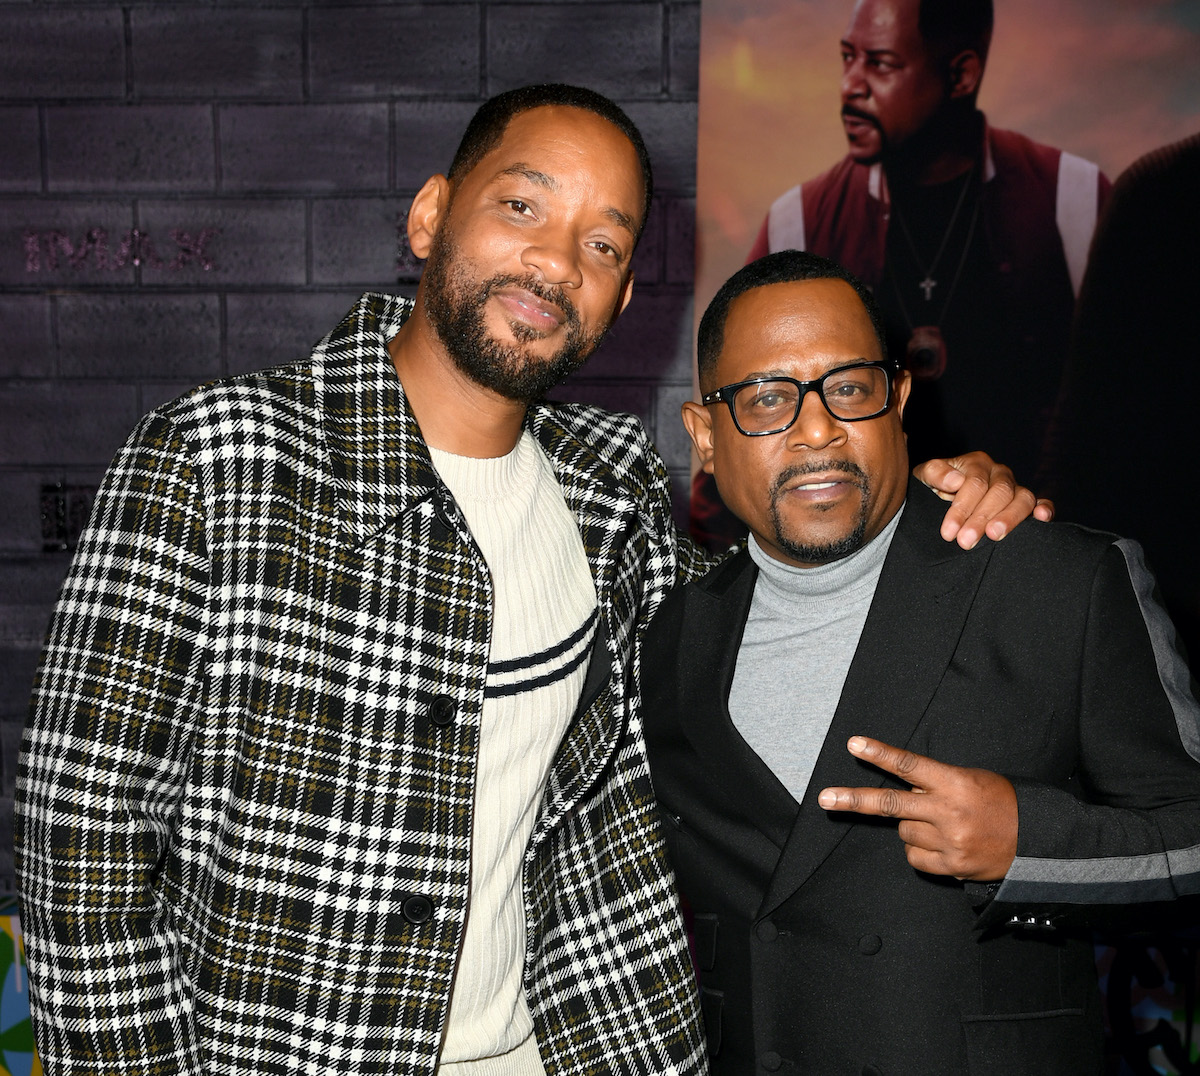 Will Smith and Martin Lawrence at the 'Bad Boys For Life' premiere